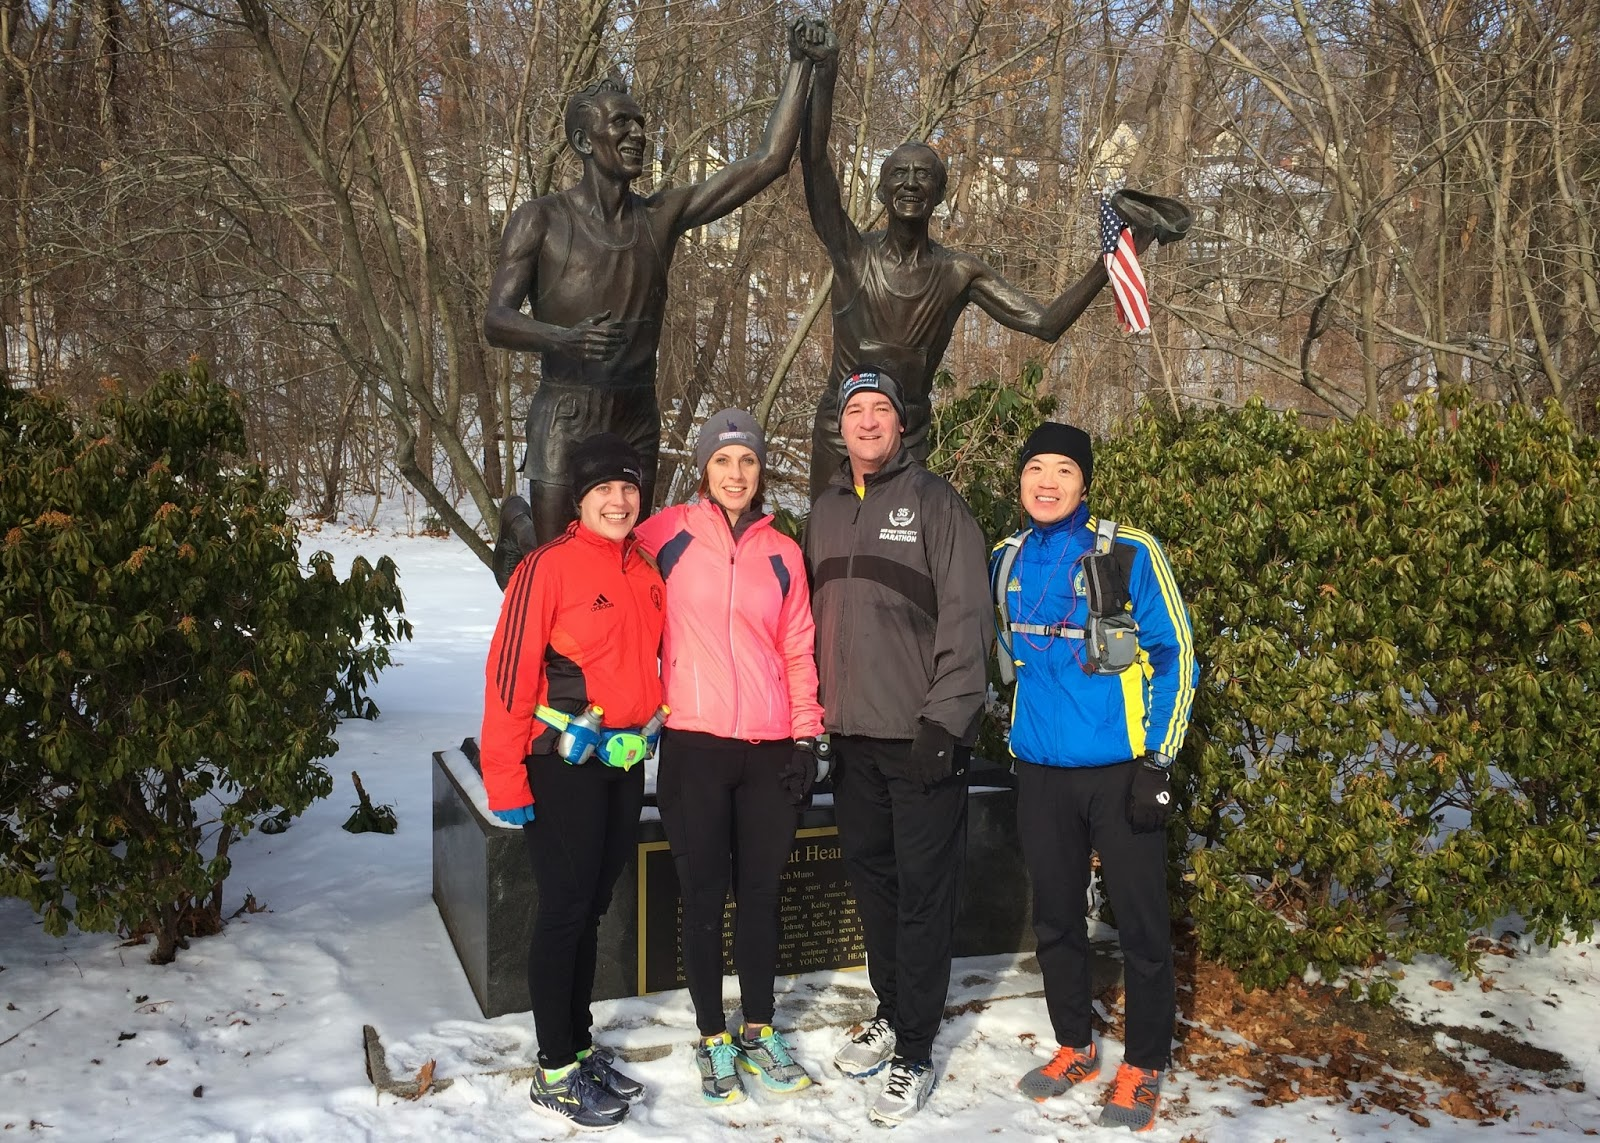 Team JAF runners training for 118th Boston Marathon